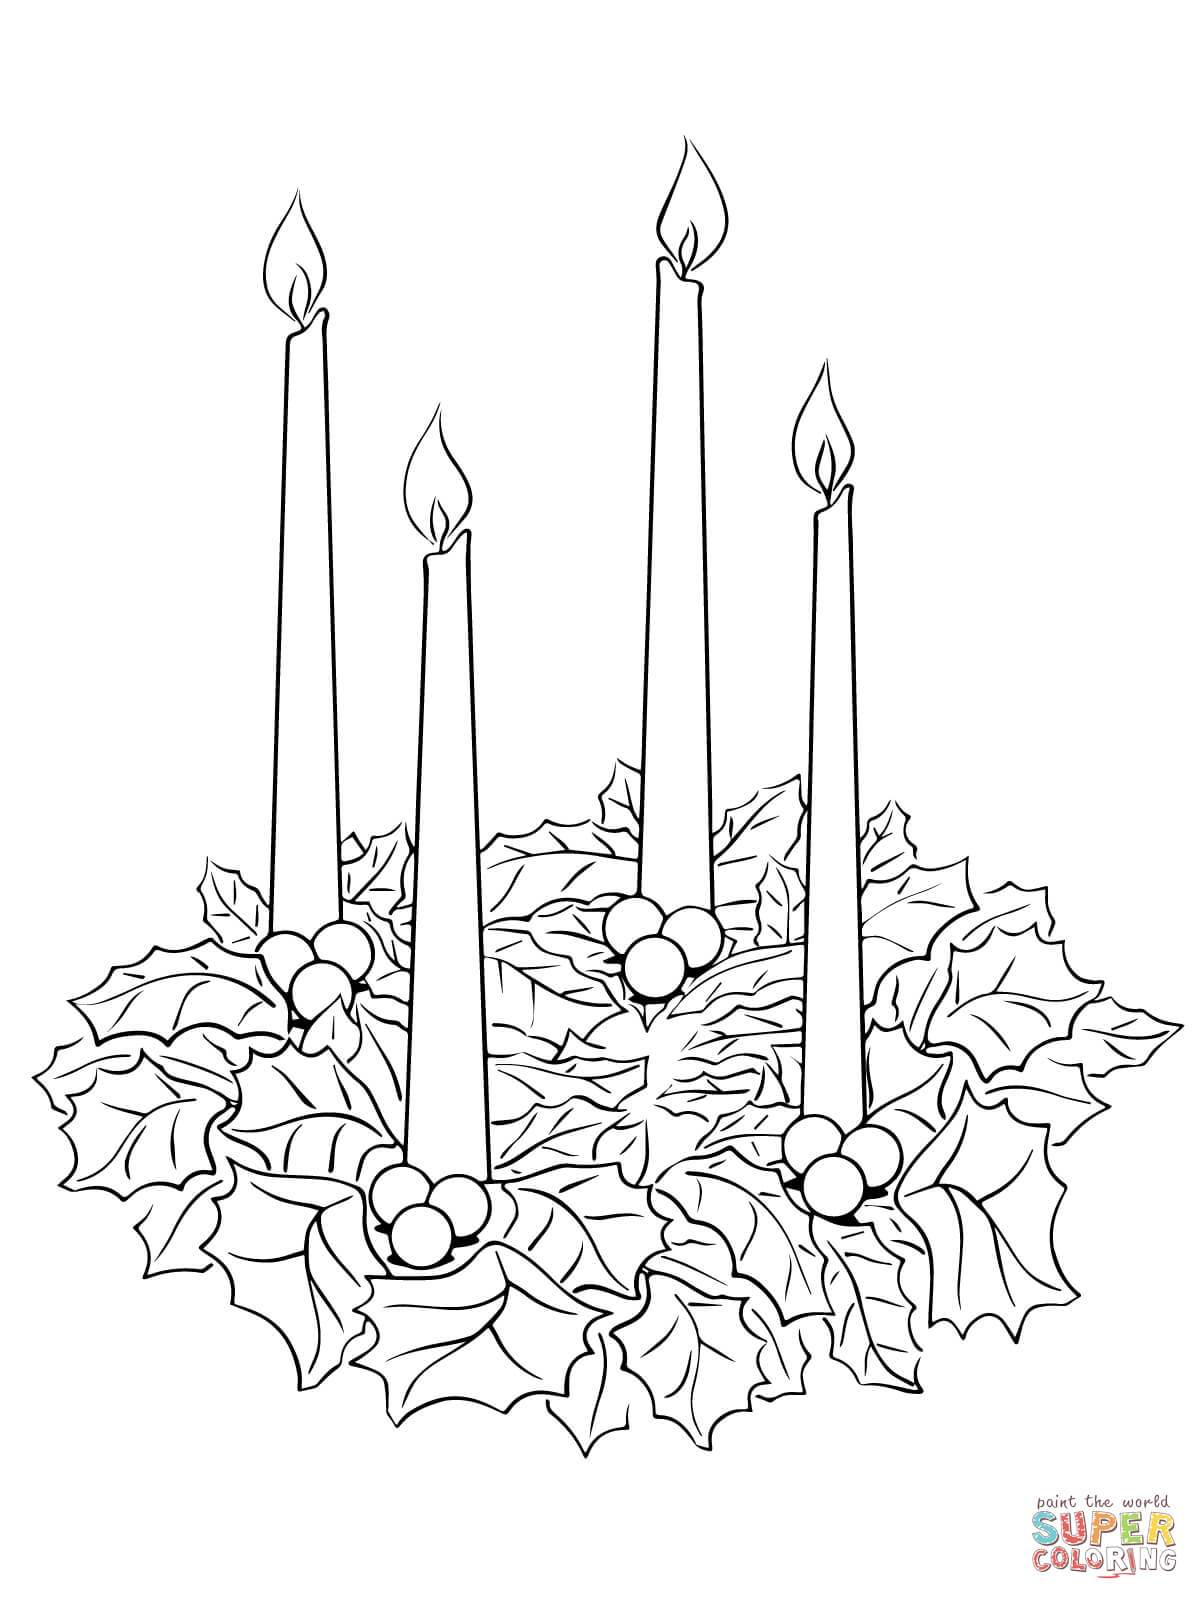 Advent wreath clipart black and white 5 » Clipart Portal.